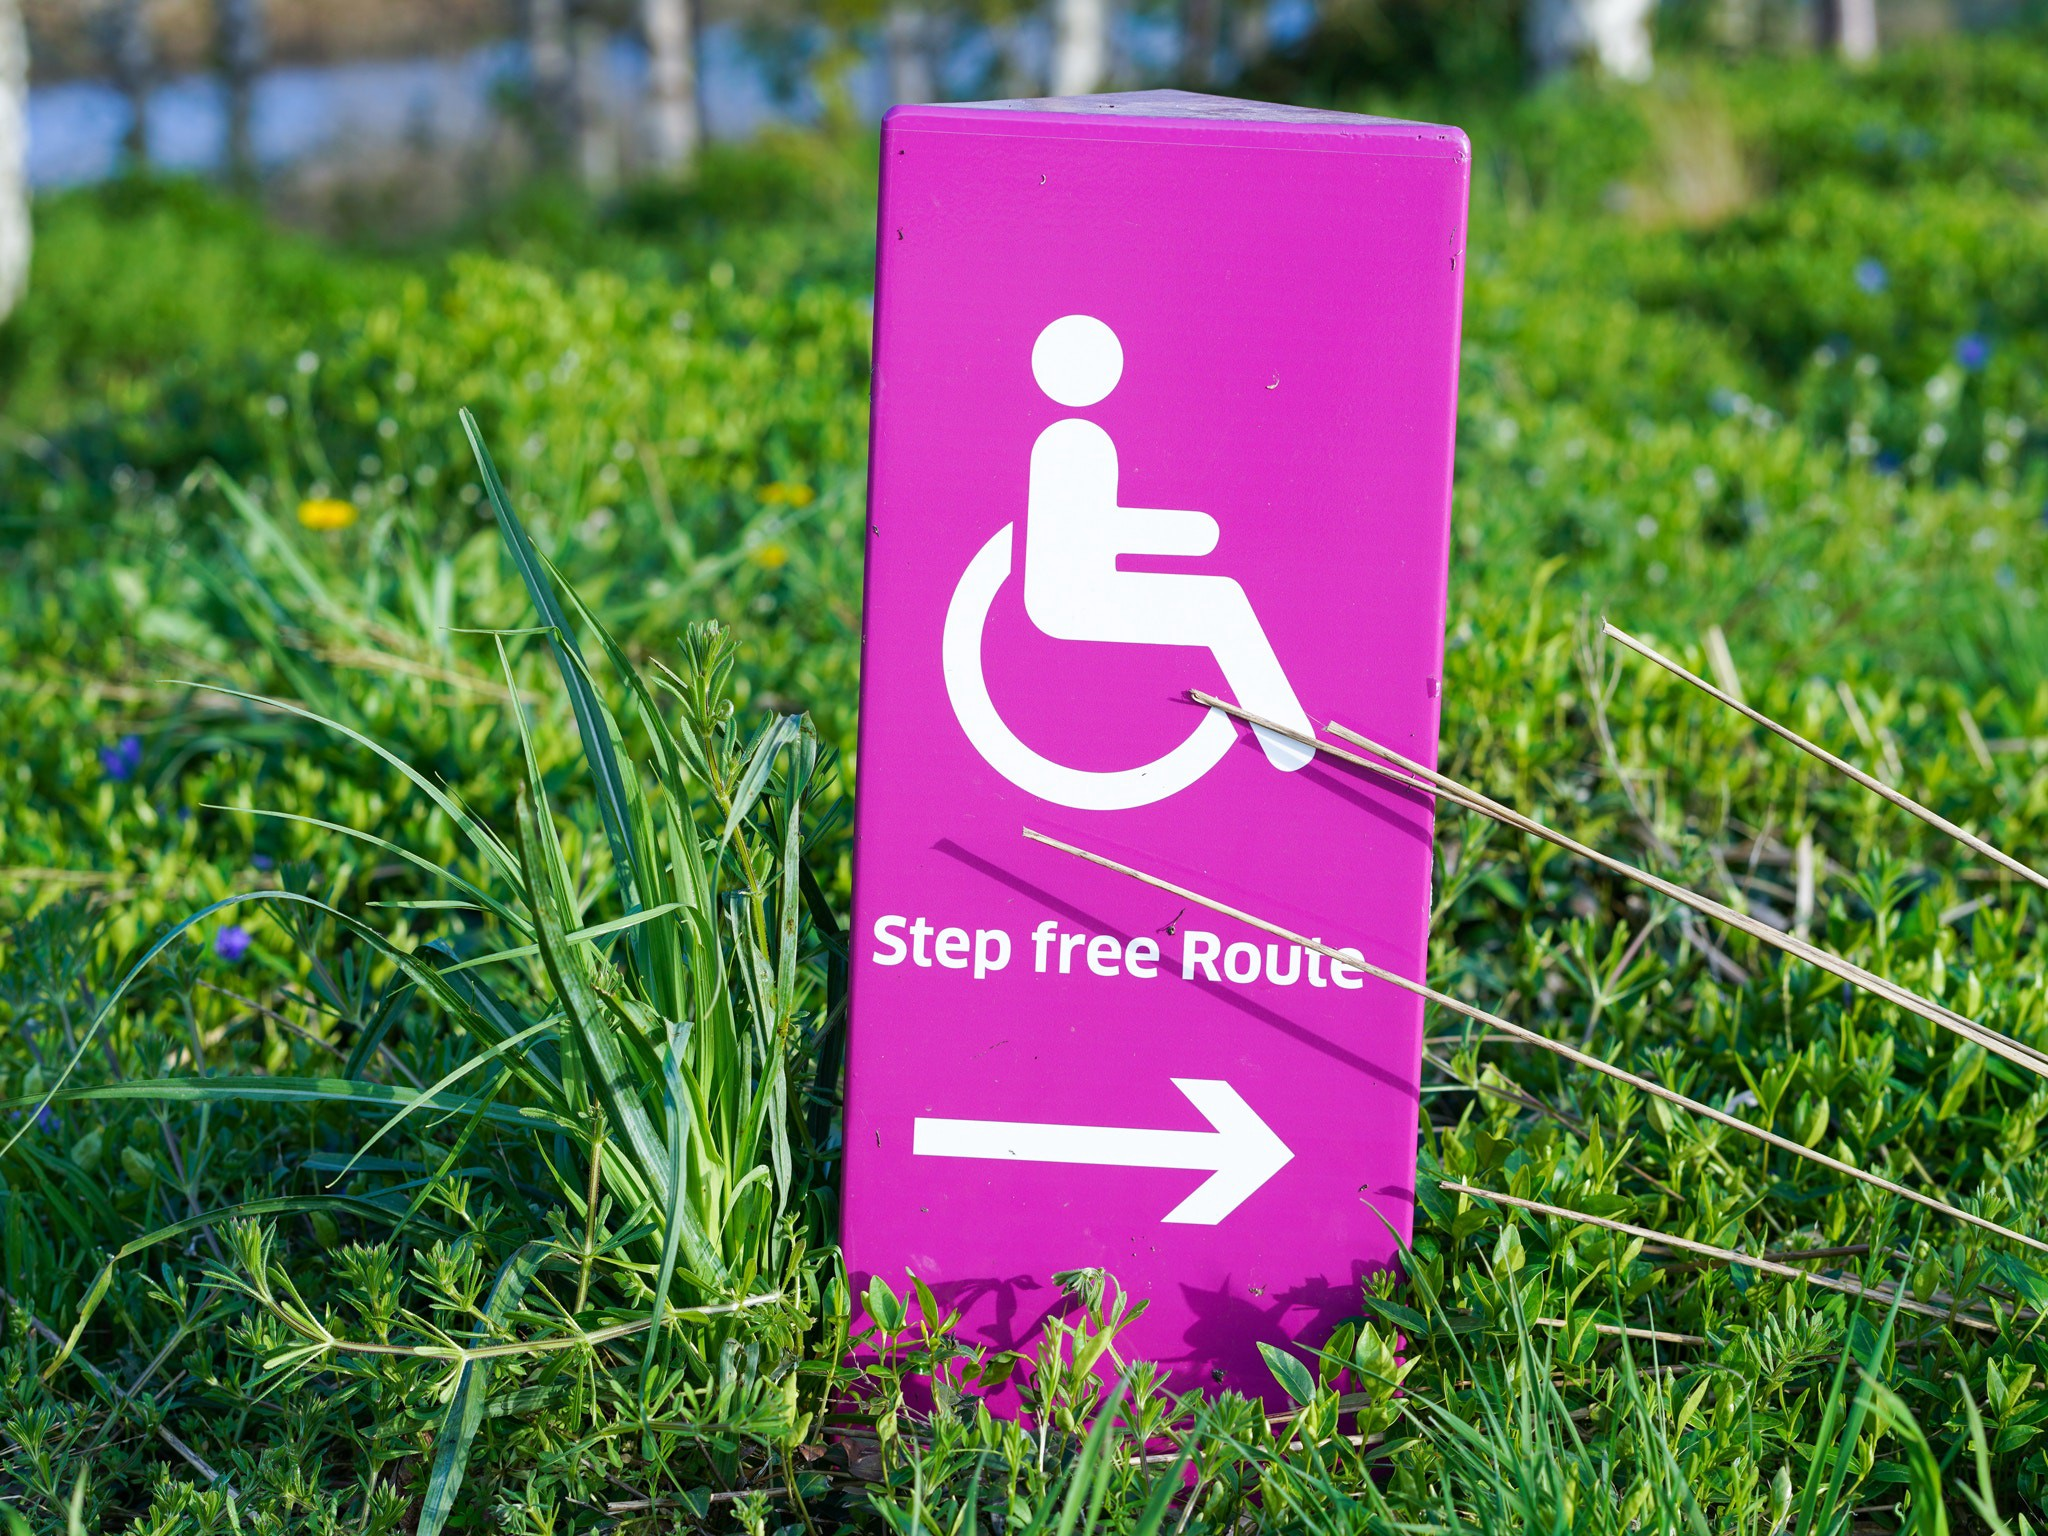 A sign in some grass pointing to the accessible route.